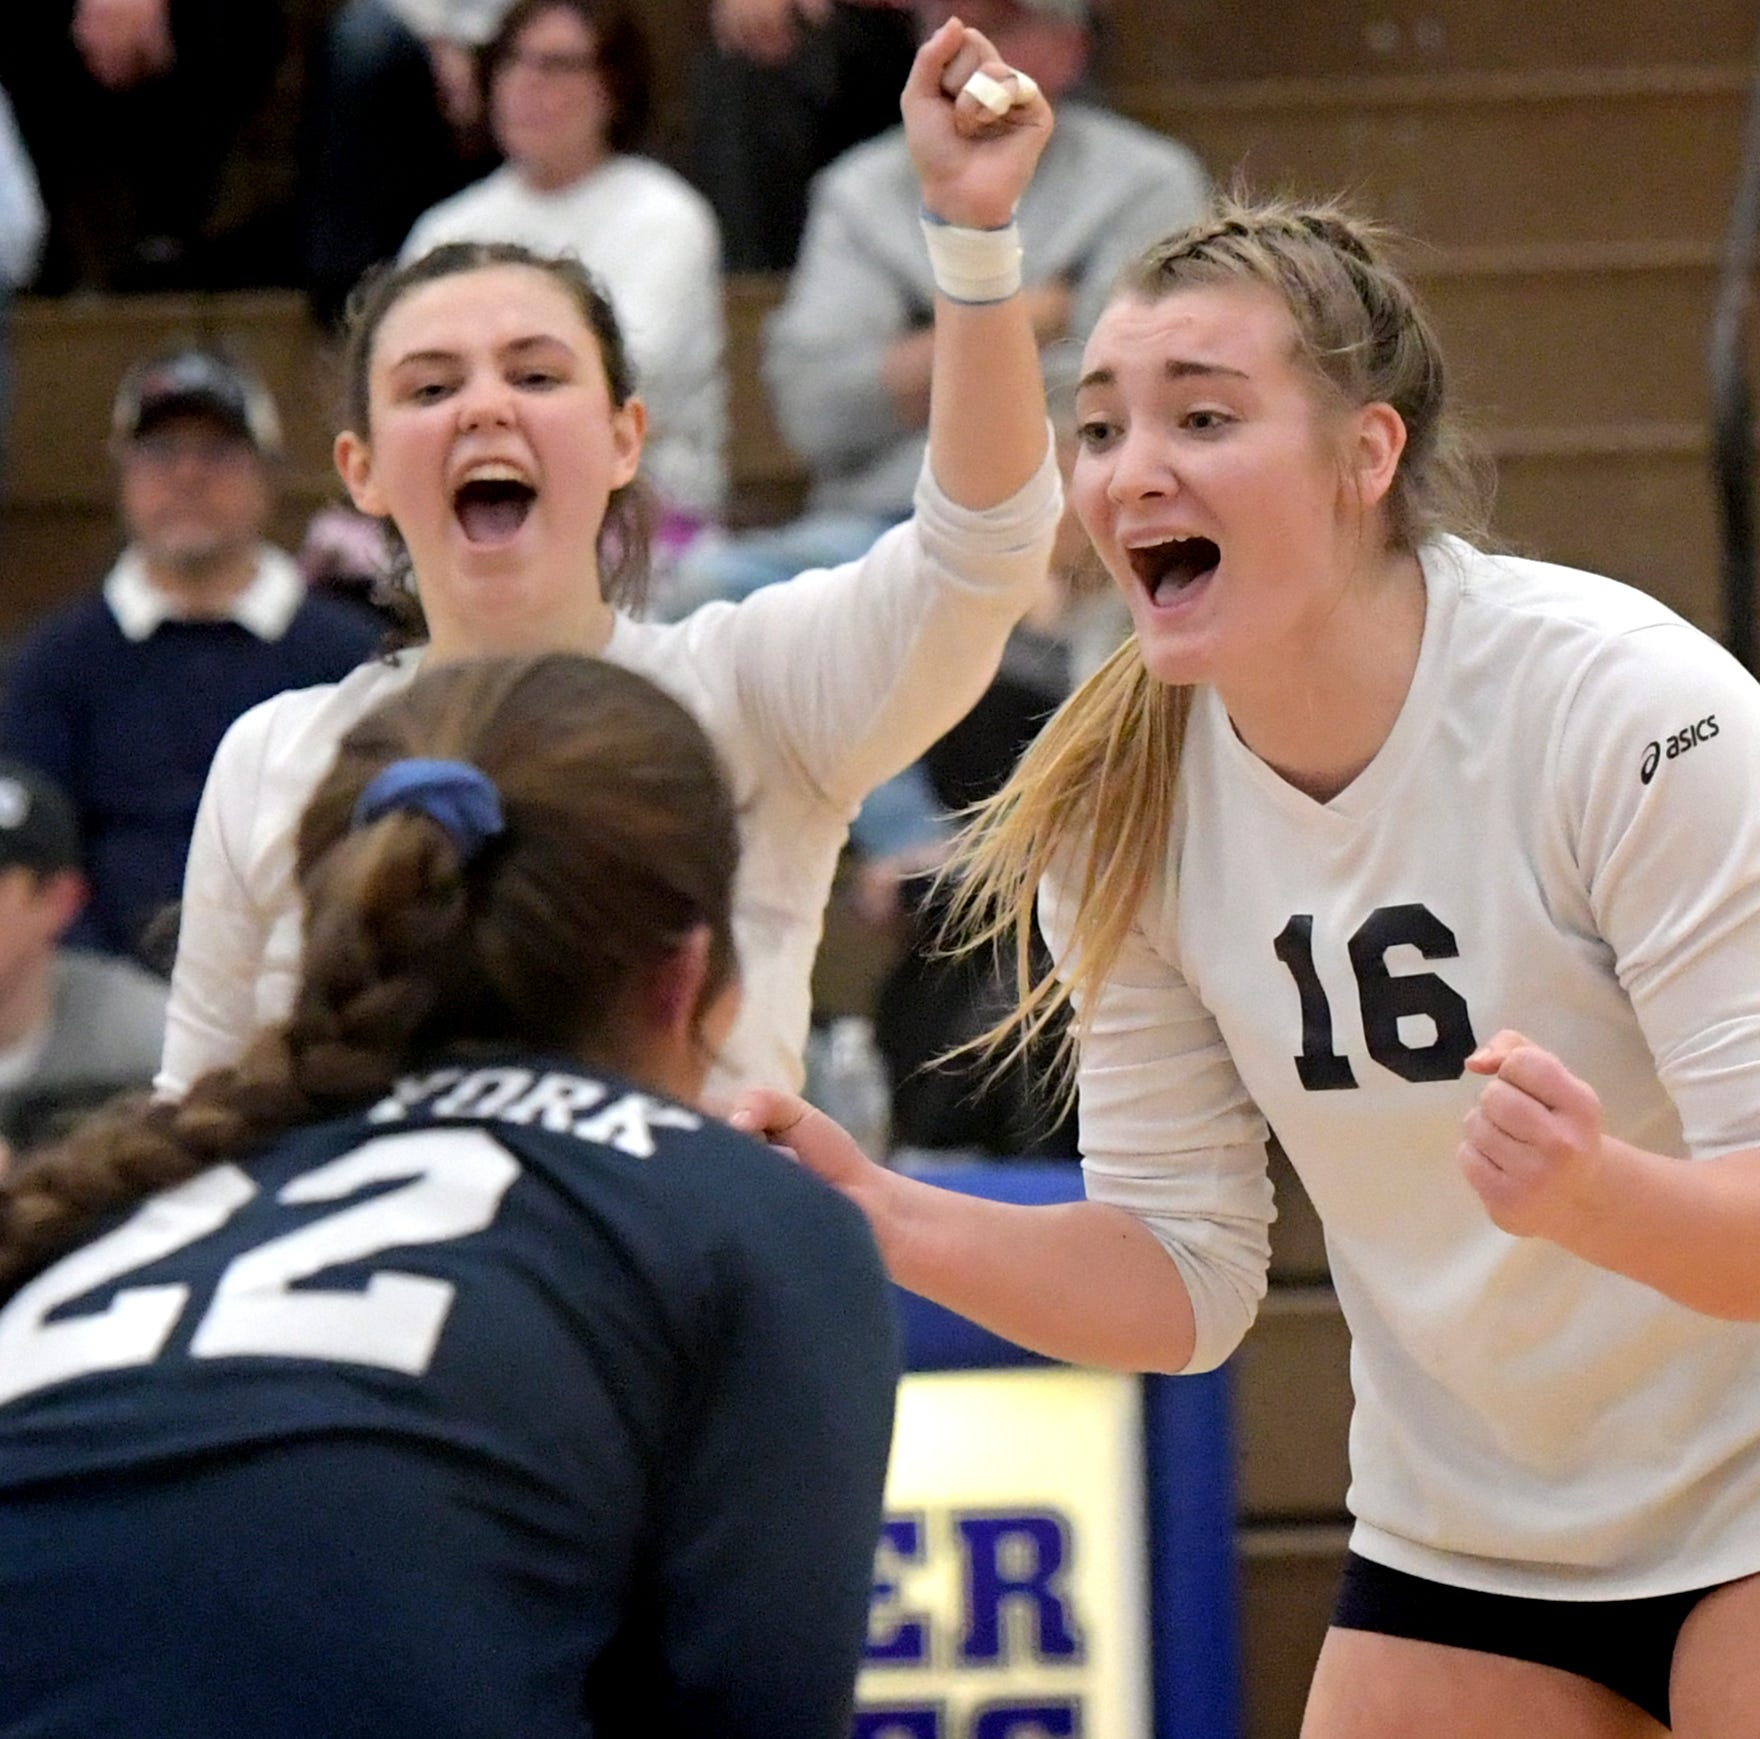 West York girls' volleyball team earns thrilling win, redemption and state title berth